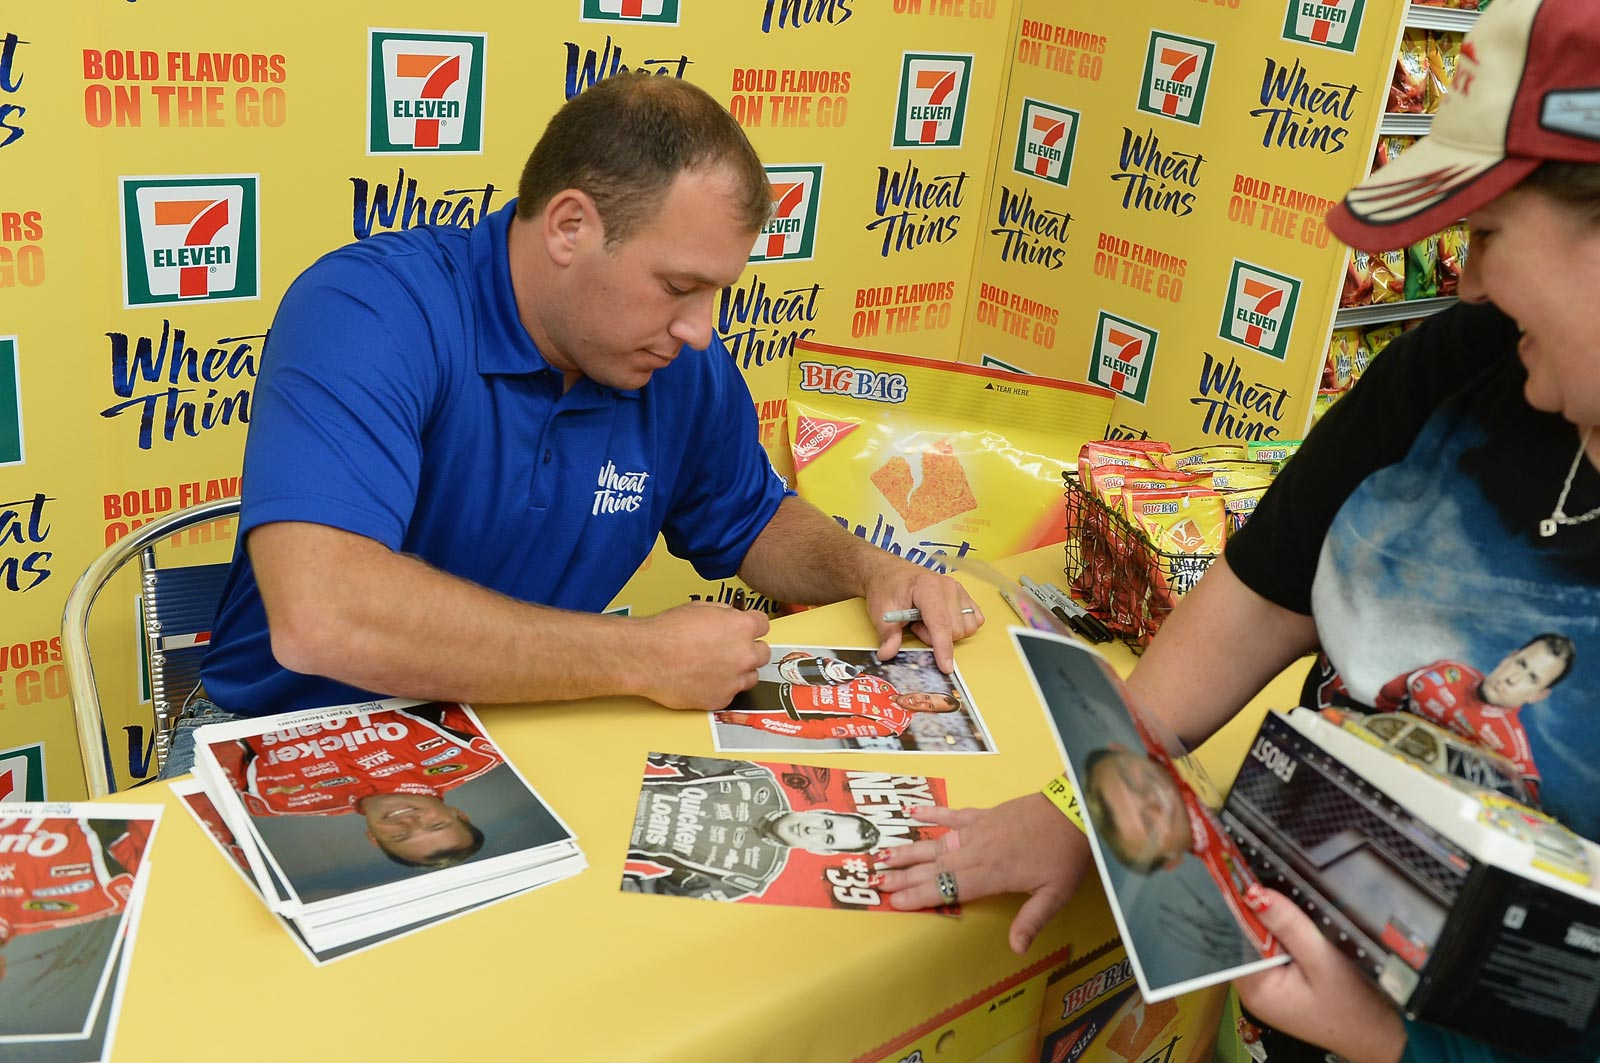 ryan-newman-wheat-thins-02